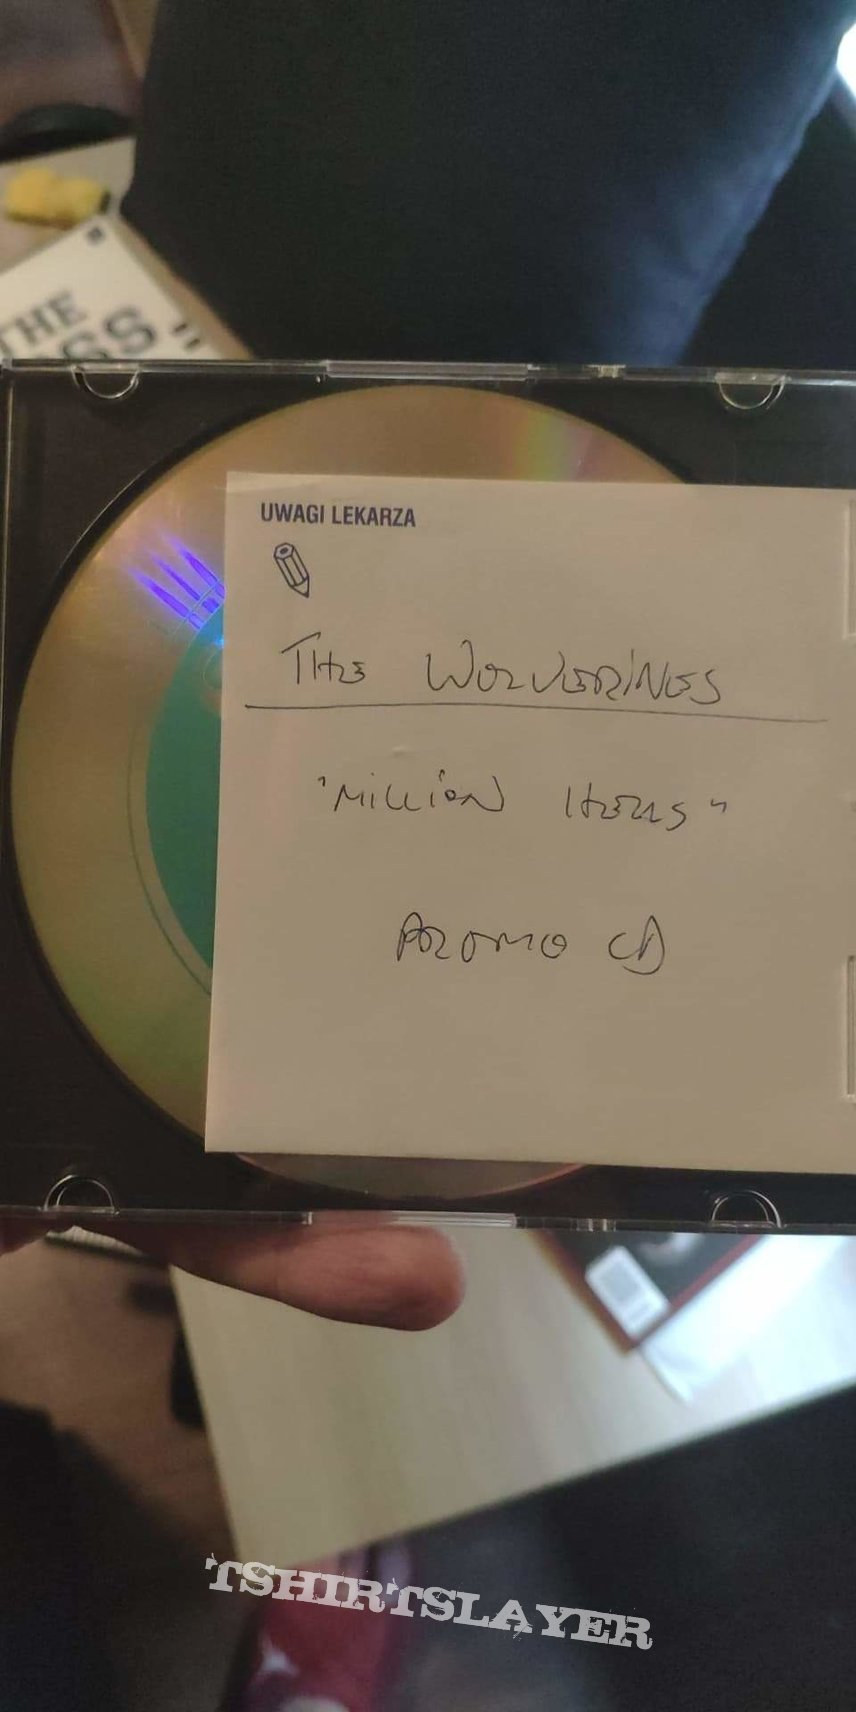 The Wolverines promo CD (Nergal side project 2000